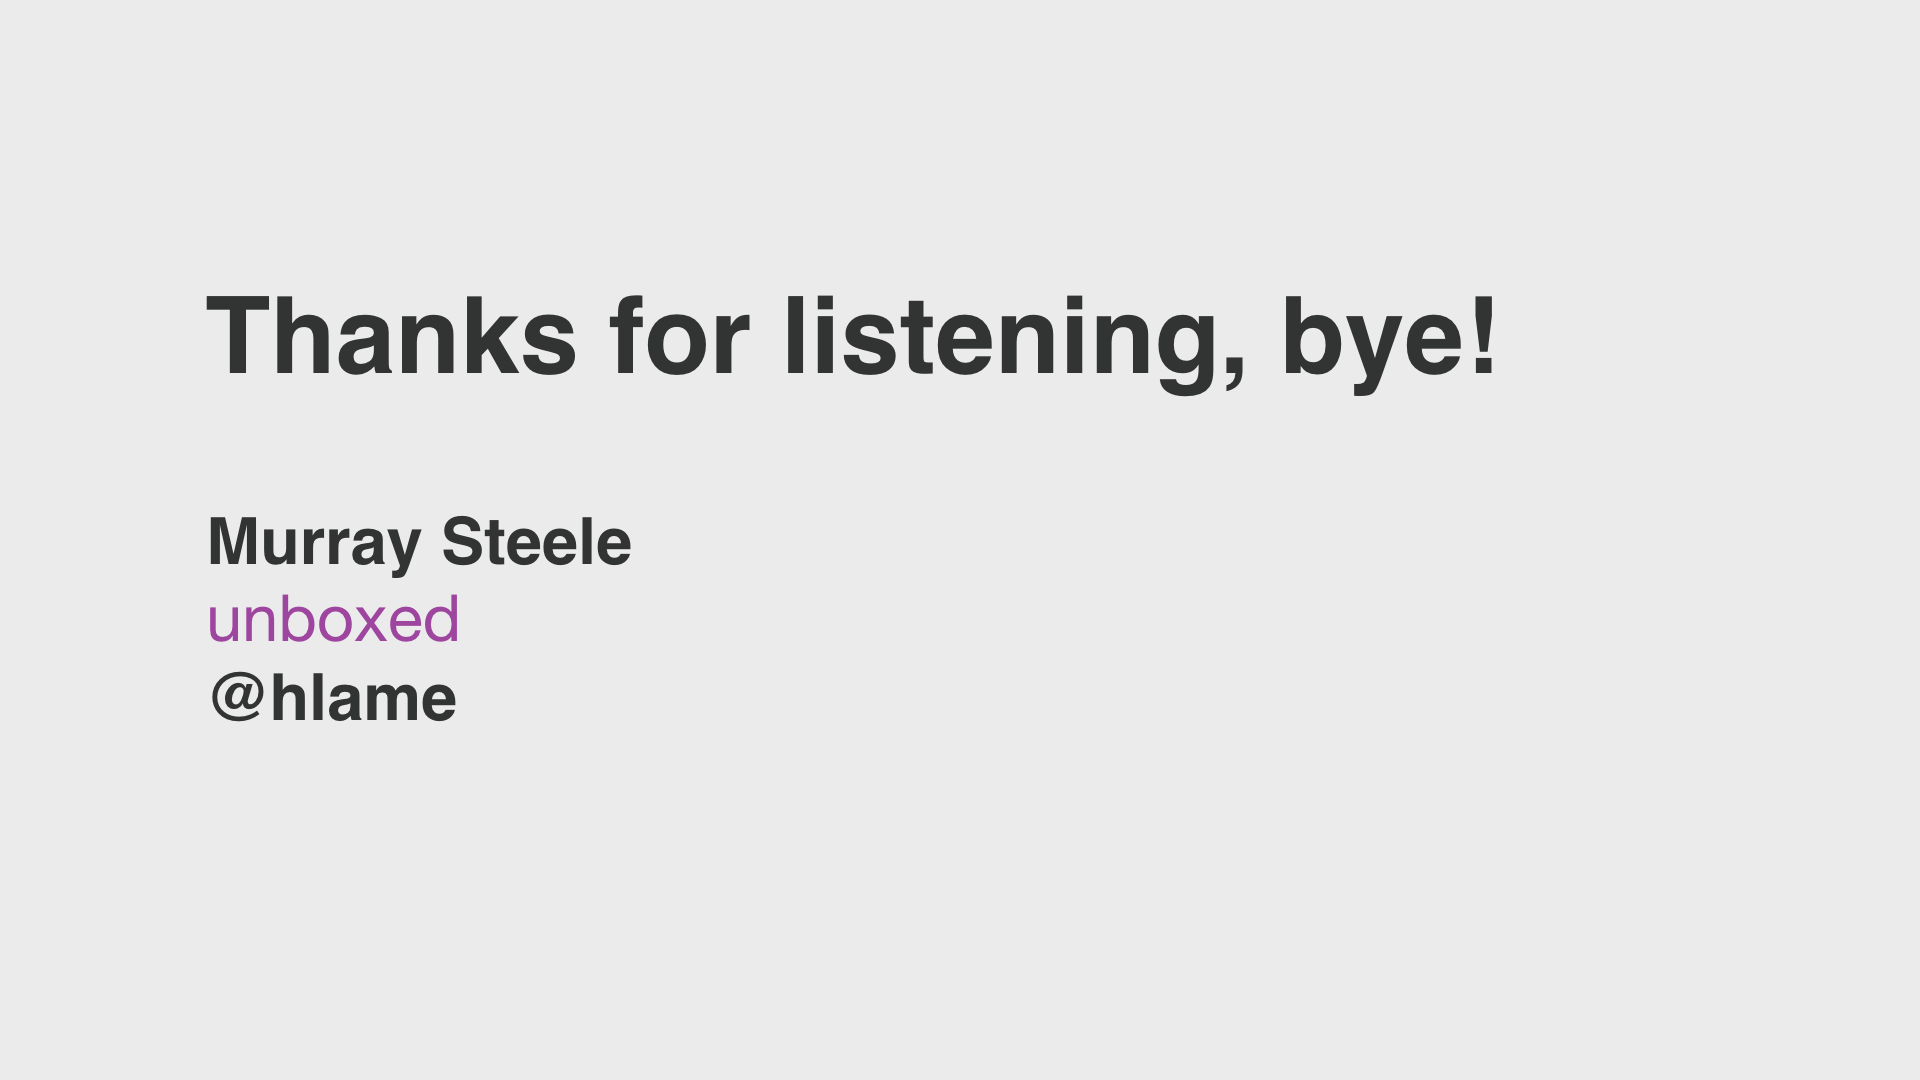 text: Thanks for listening, bye! Murray Steele, Unboxed, @hlame